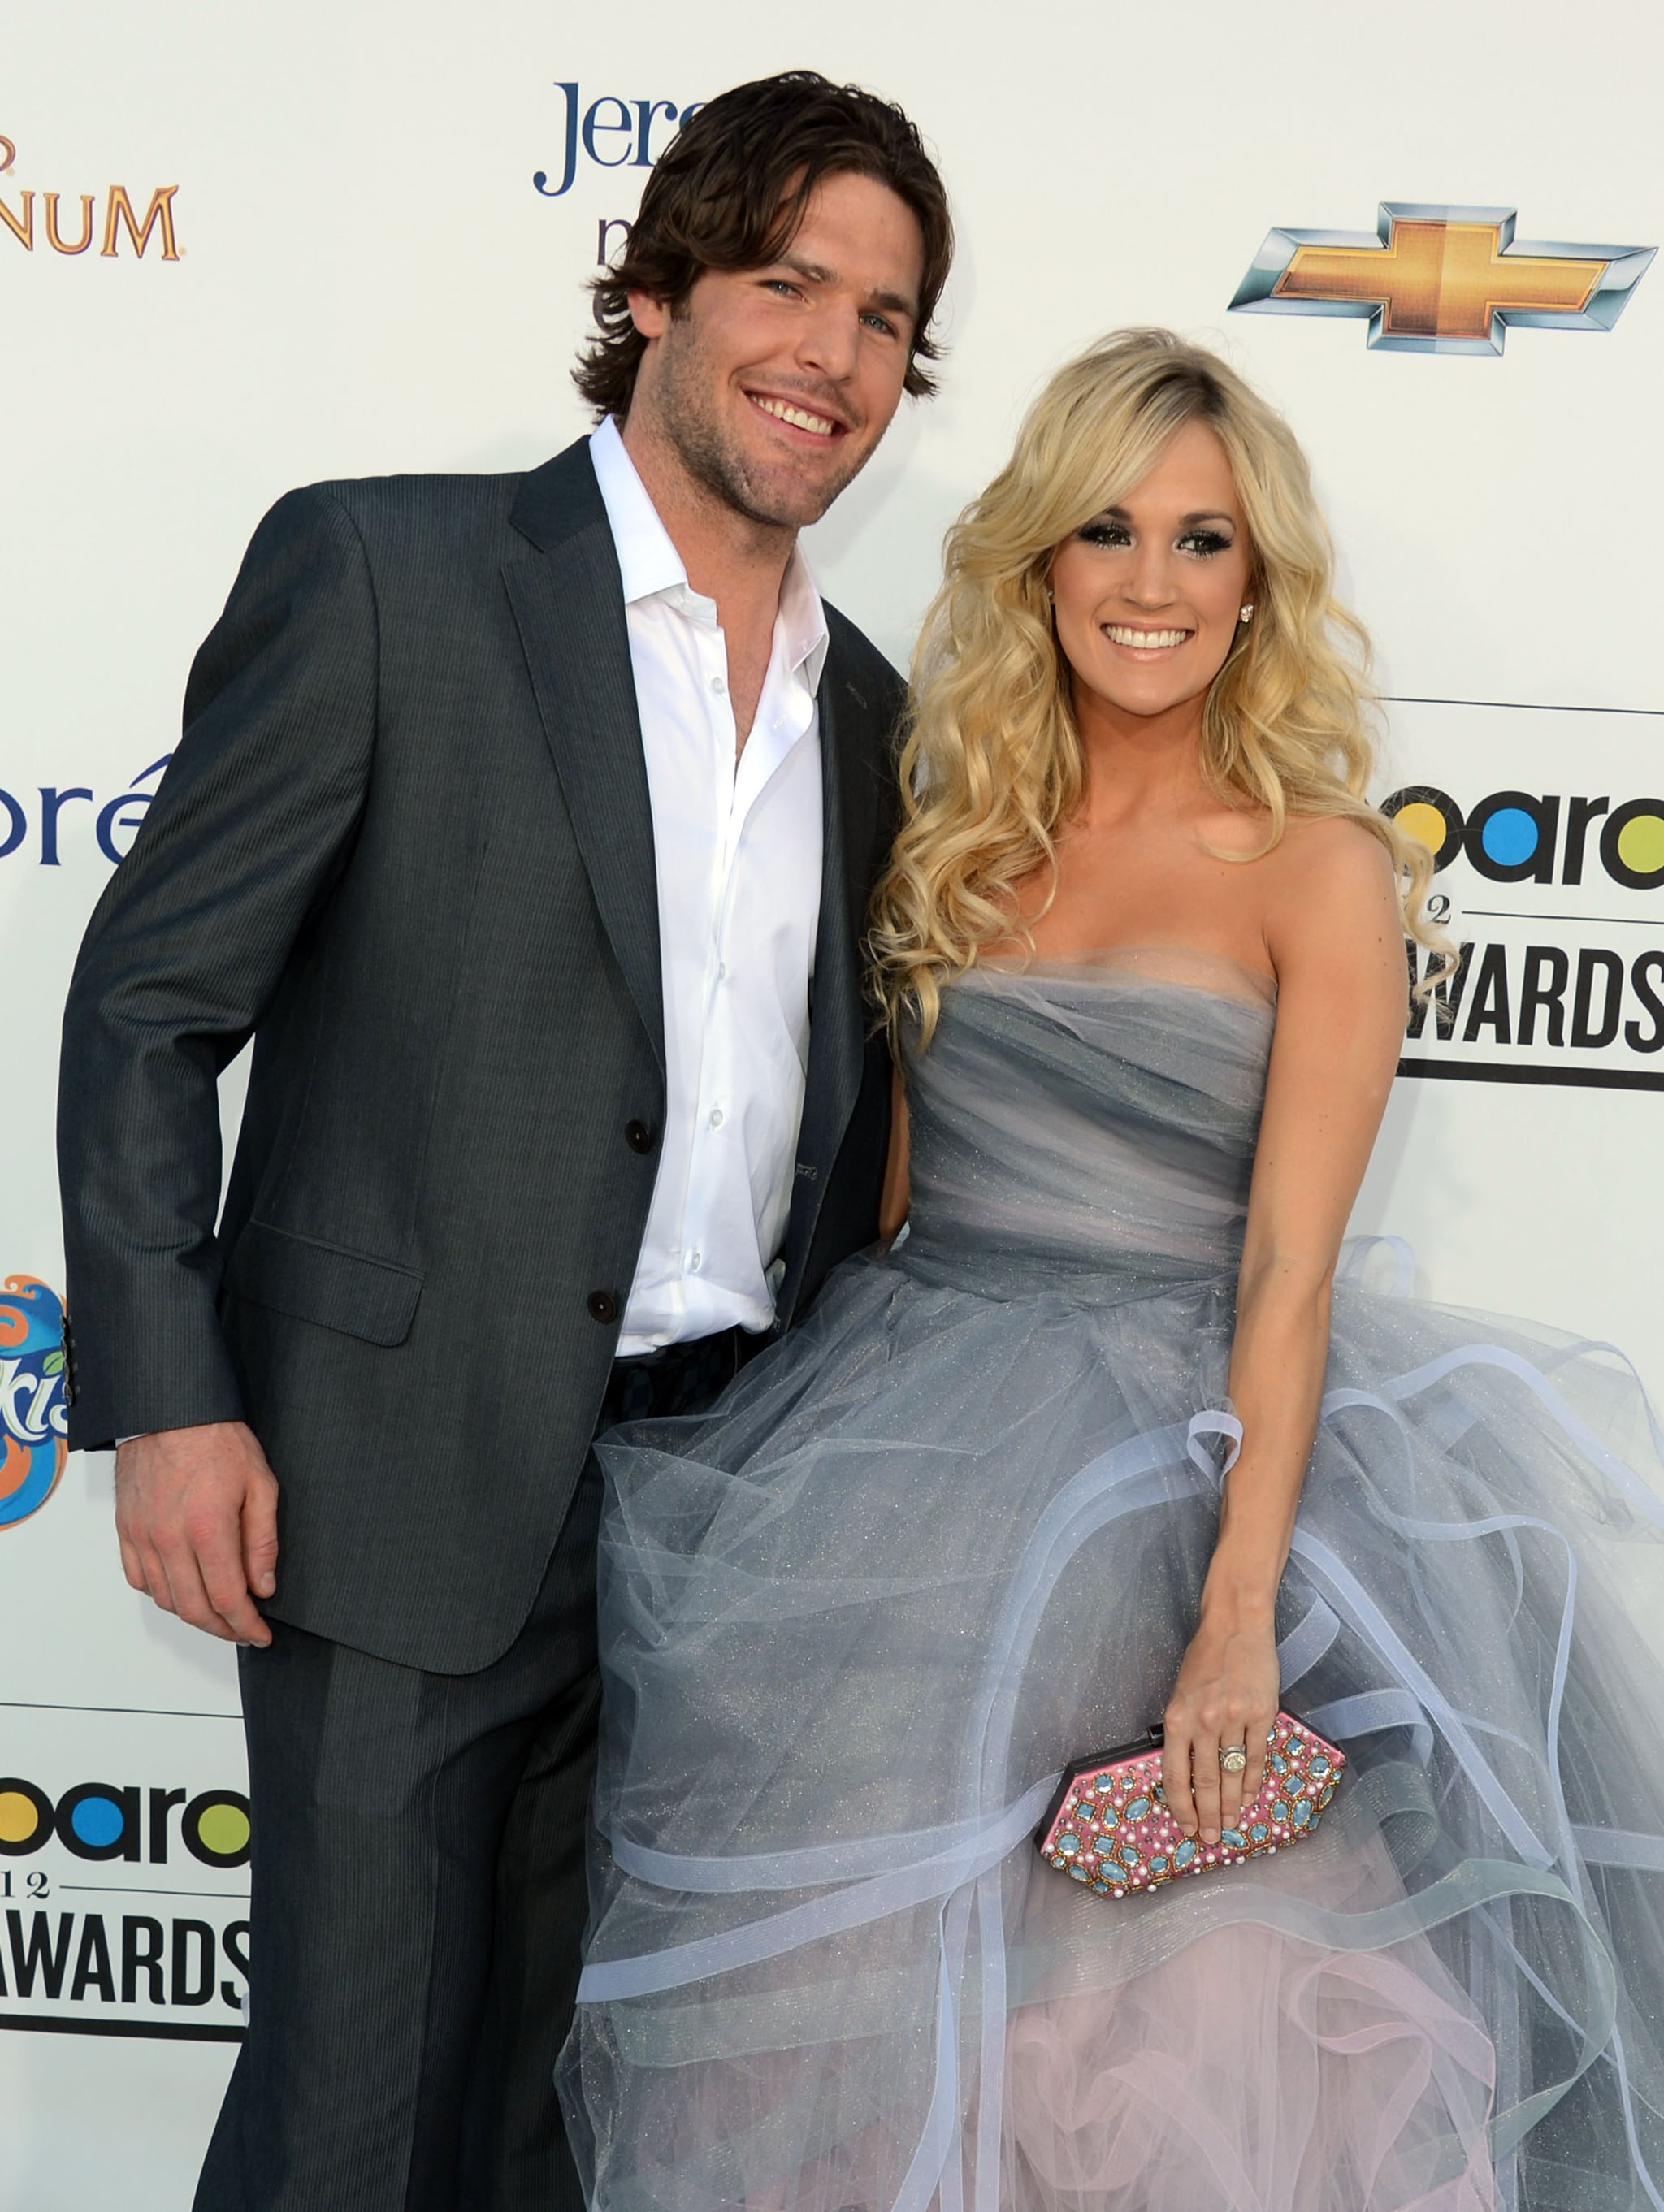 Carrie Underwood and her husband, Mike Fisher, were on hand for the 2012 Billboard Music Awards in May.